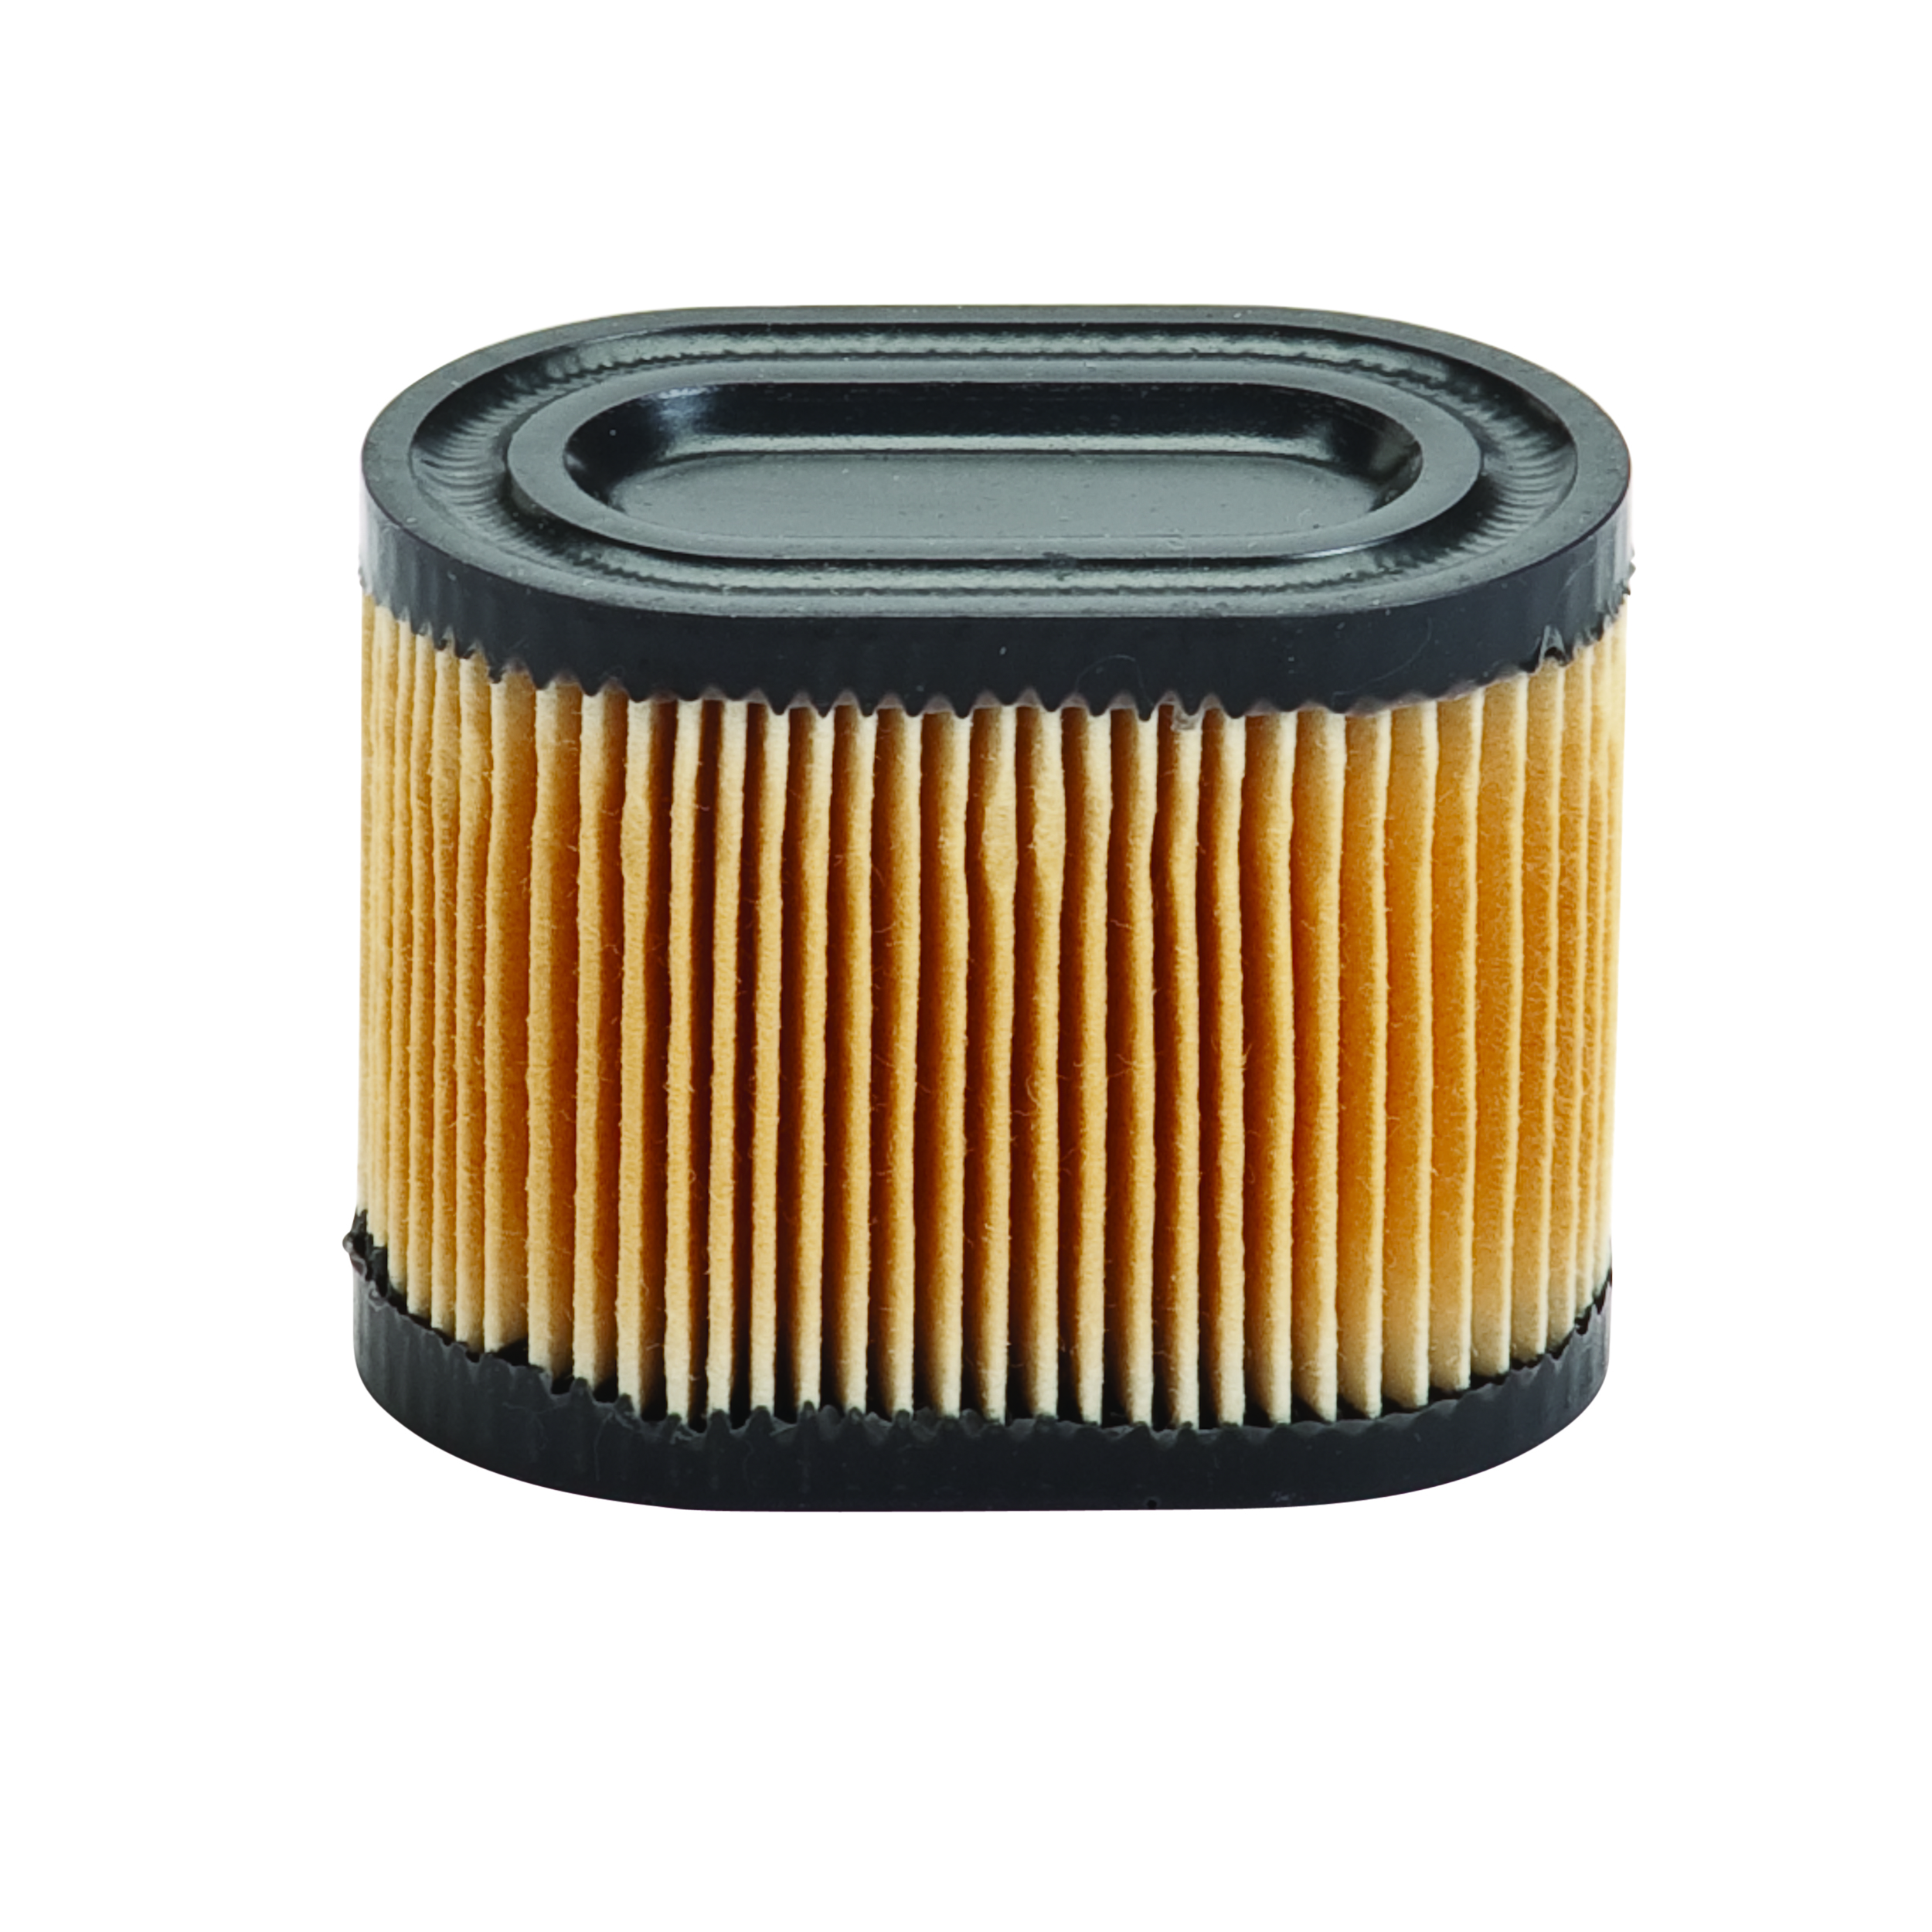 Replacement Air Filter For Tractors : Replacement air filter for tecumseh